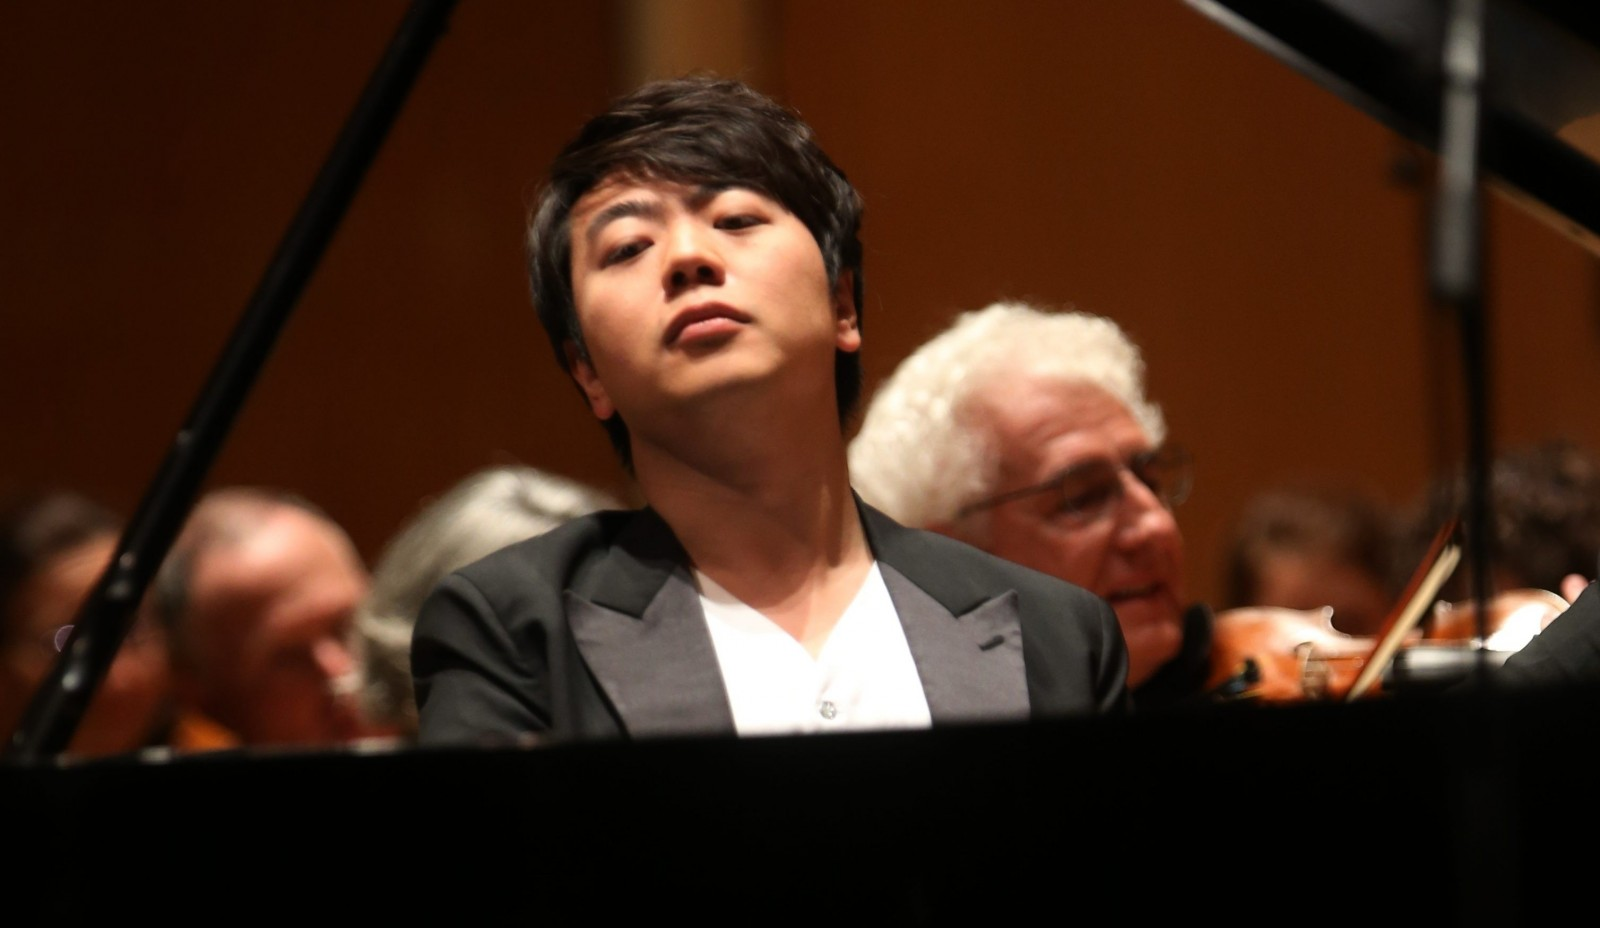 Lang Lang plays Rachmaninoff's Concerto No. 2 in C minor for Piano and Orchestra, Op. 18, during the BPO's opening night gala. See a photo gallery at BuffaloNews.com.